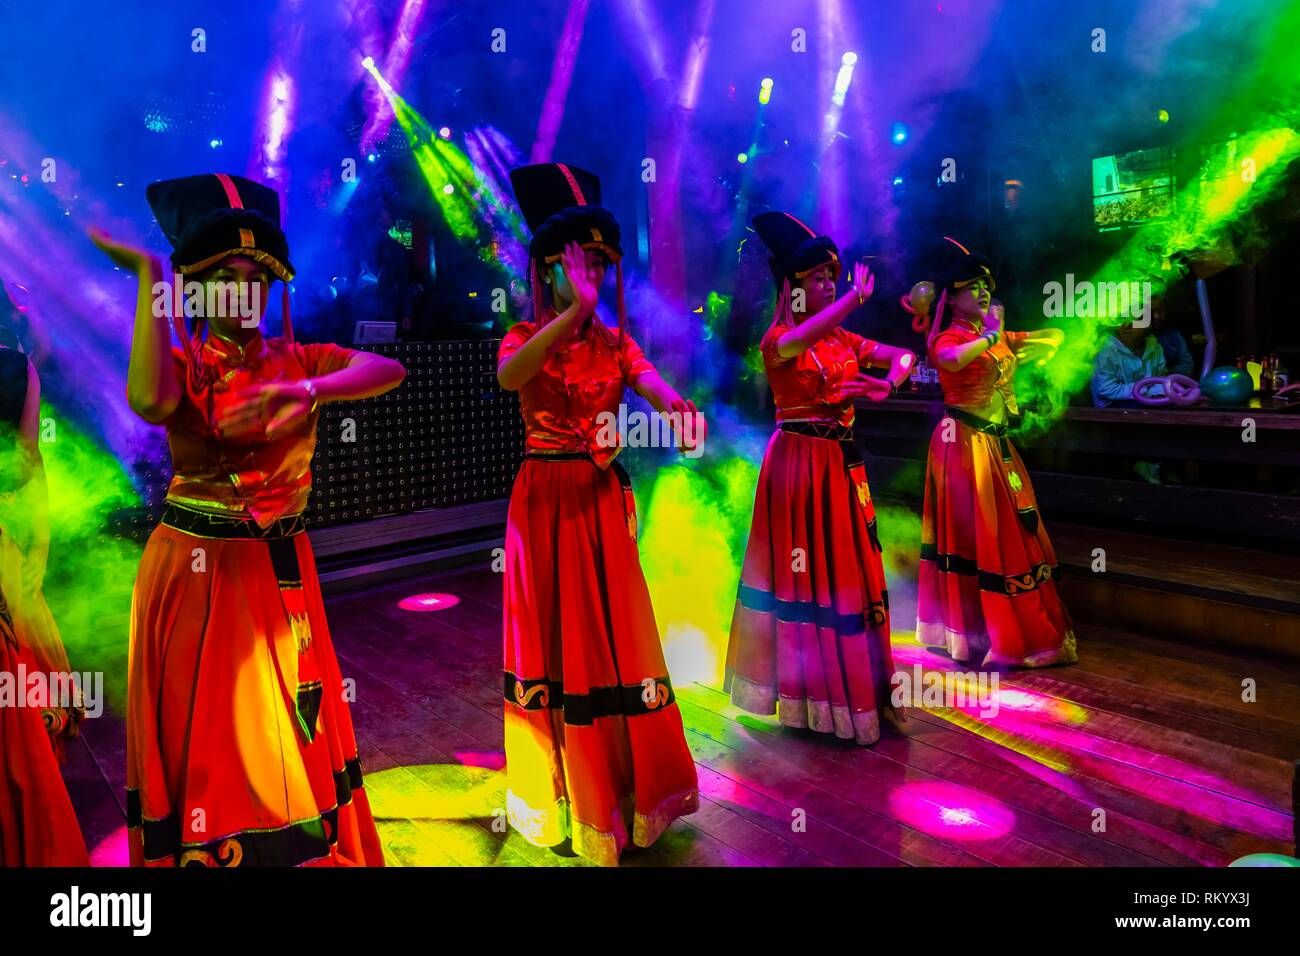 Dance performances in bars and night clubs along Bar Street (Xinhua Street) in the Old Town (Dayan) of Lijiang, Yunnan Province, China. - Stock Image